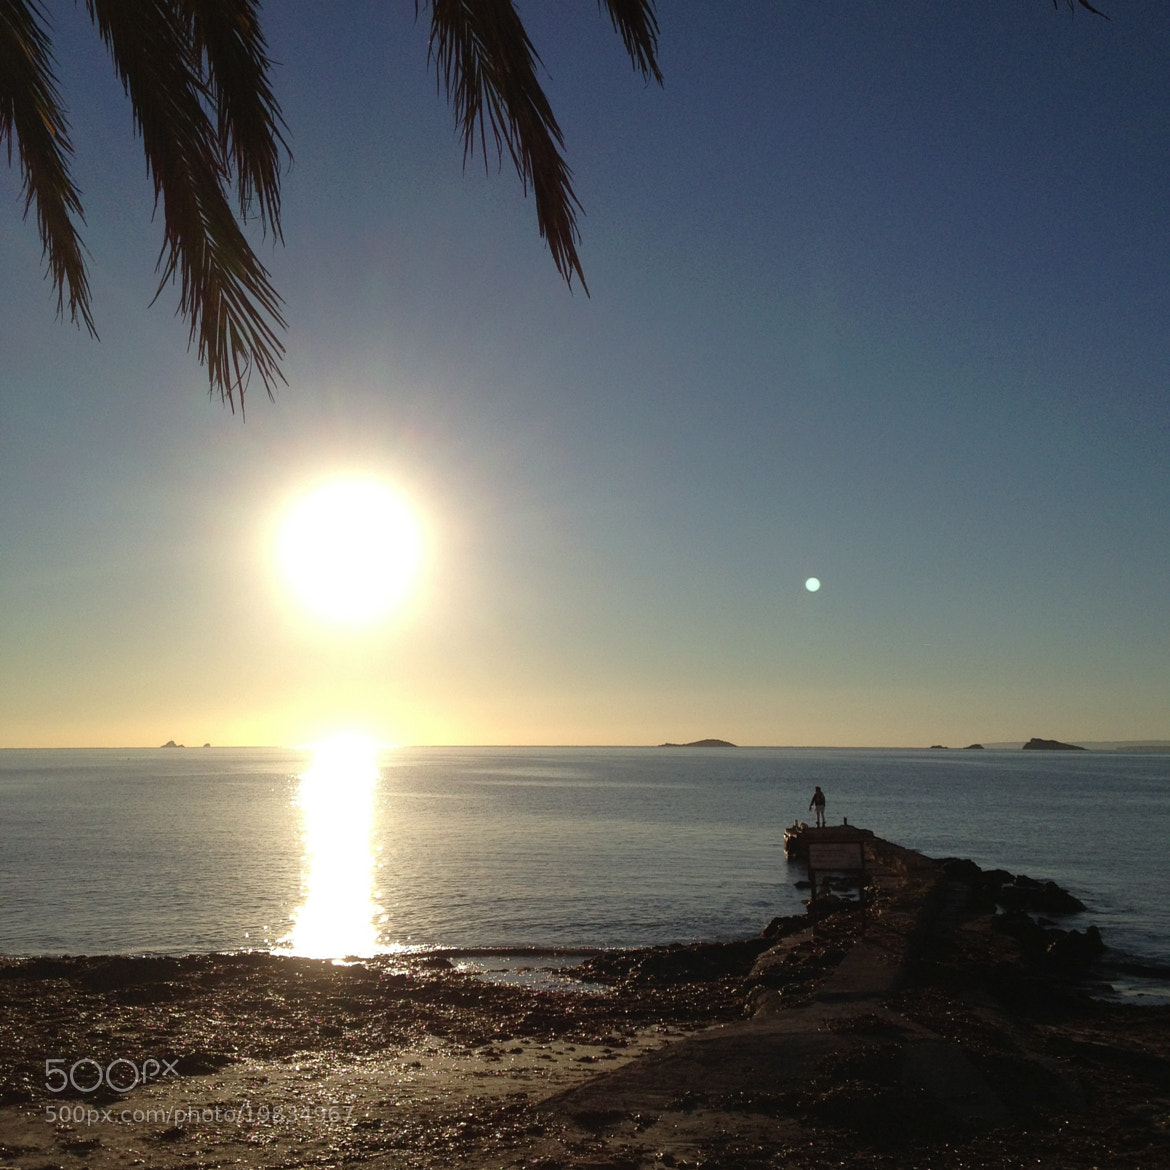 Photograph Receiving a new day by Ibiza Movilgraphy on 500px